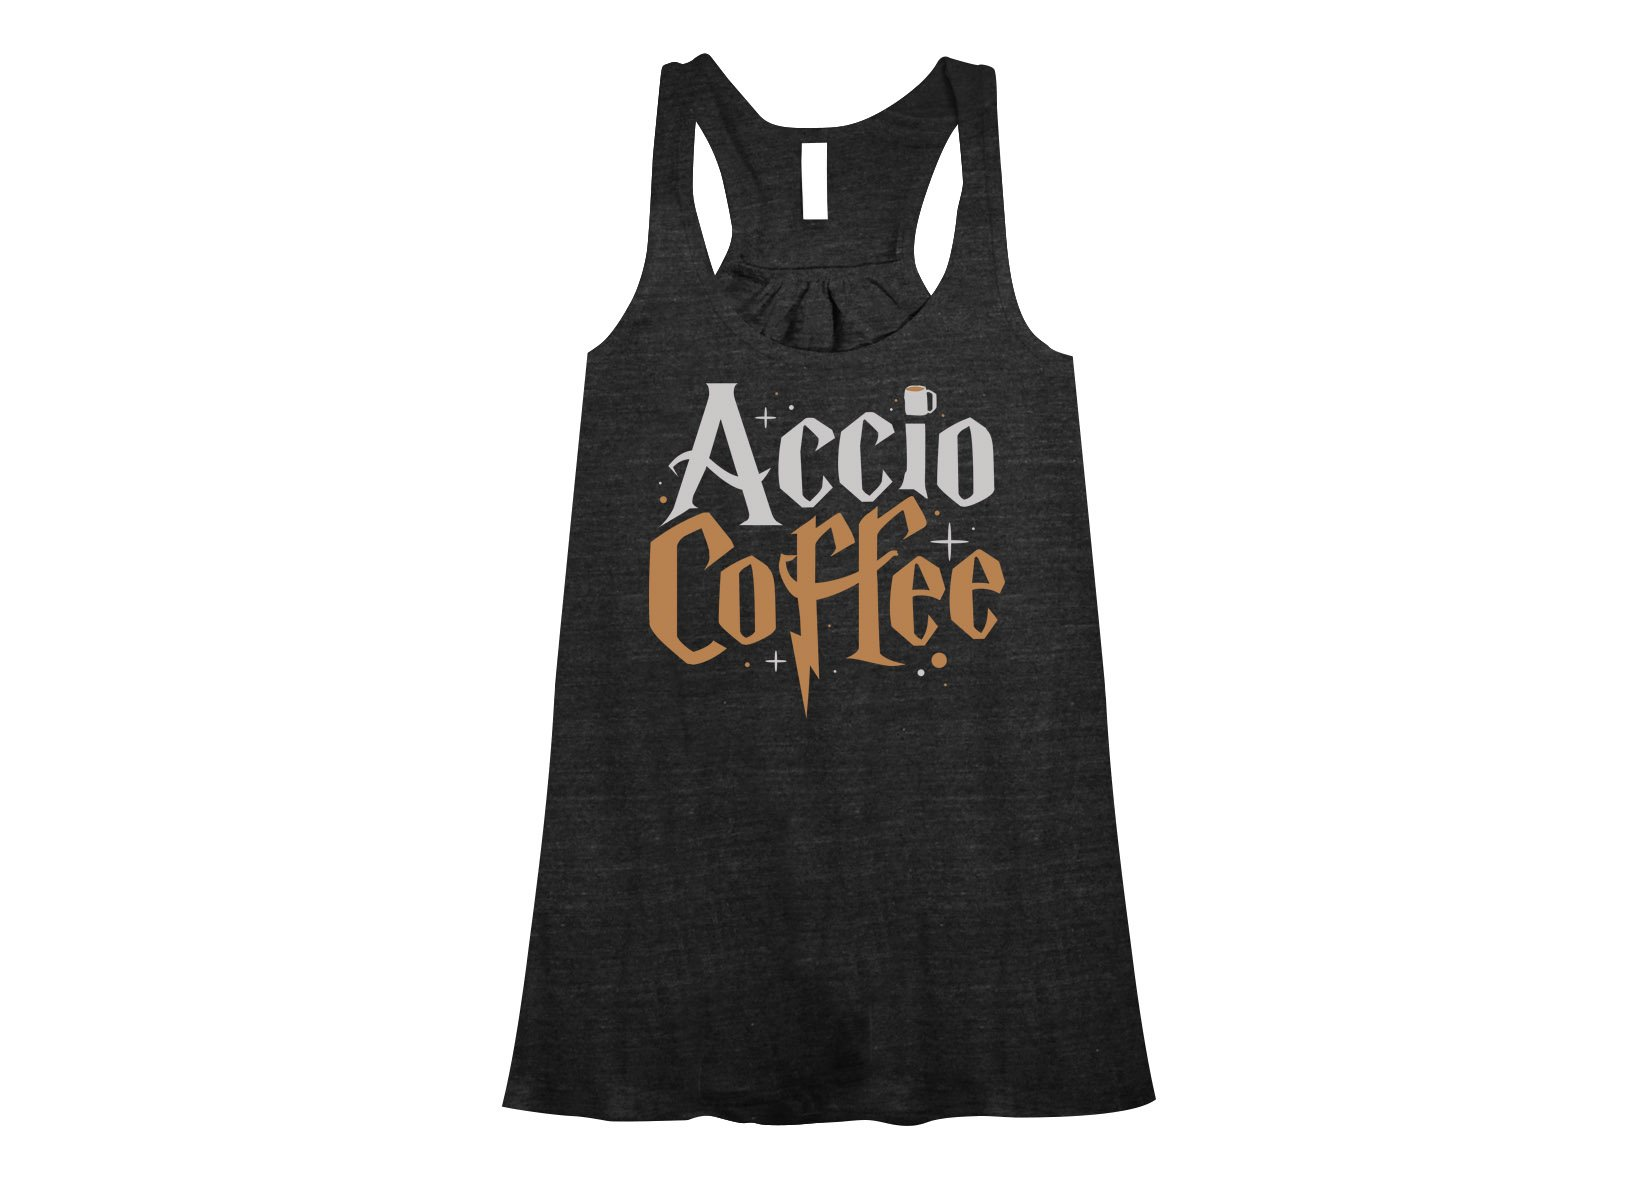 Accio Coffee on Womens Tanks T-Shirt